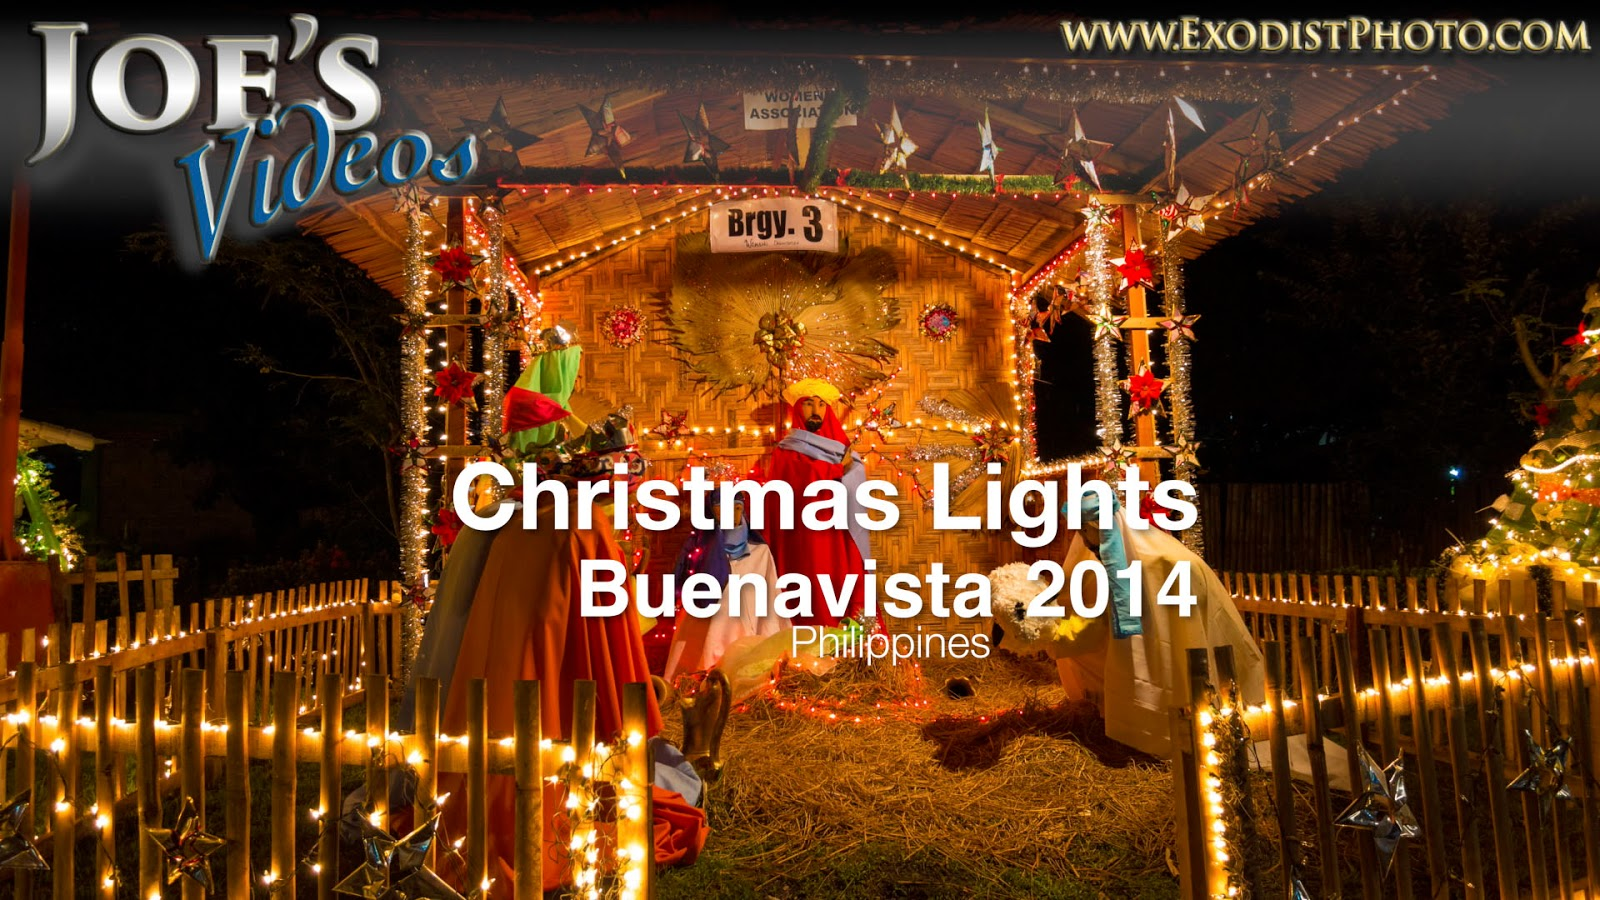 Christmas Lights In The Philippines 2014 In 4K UHD